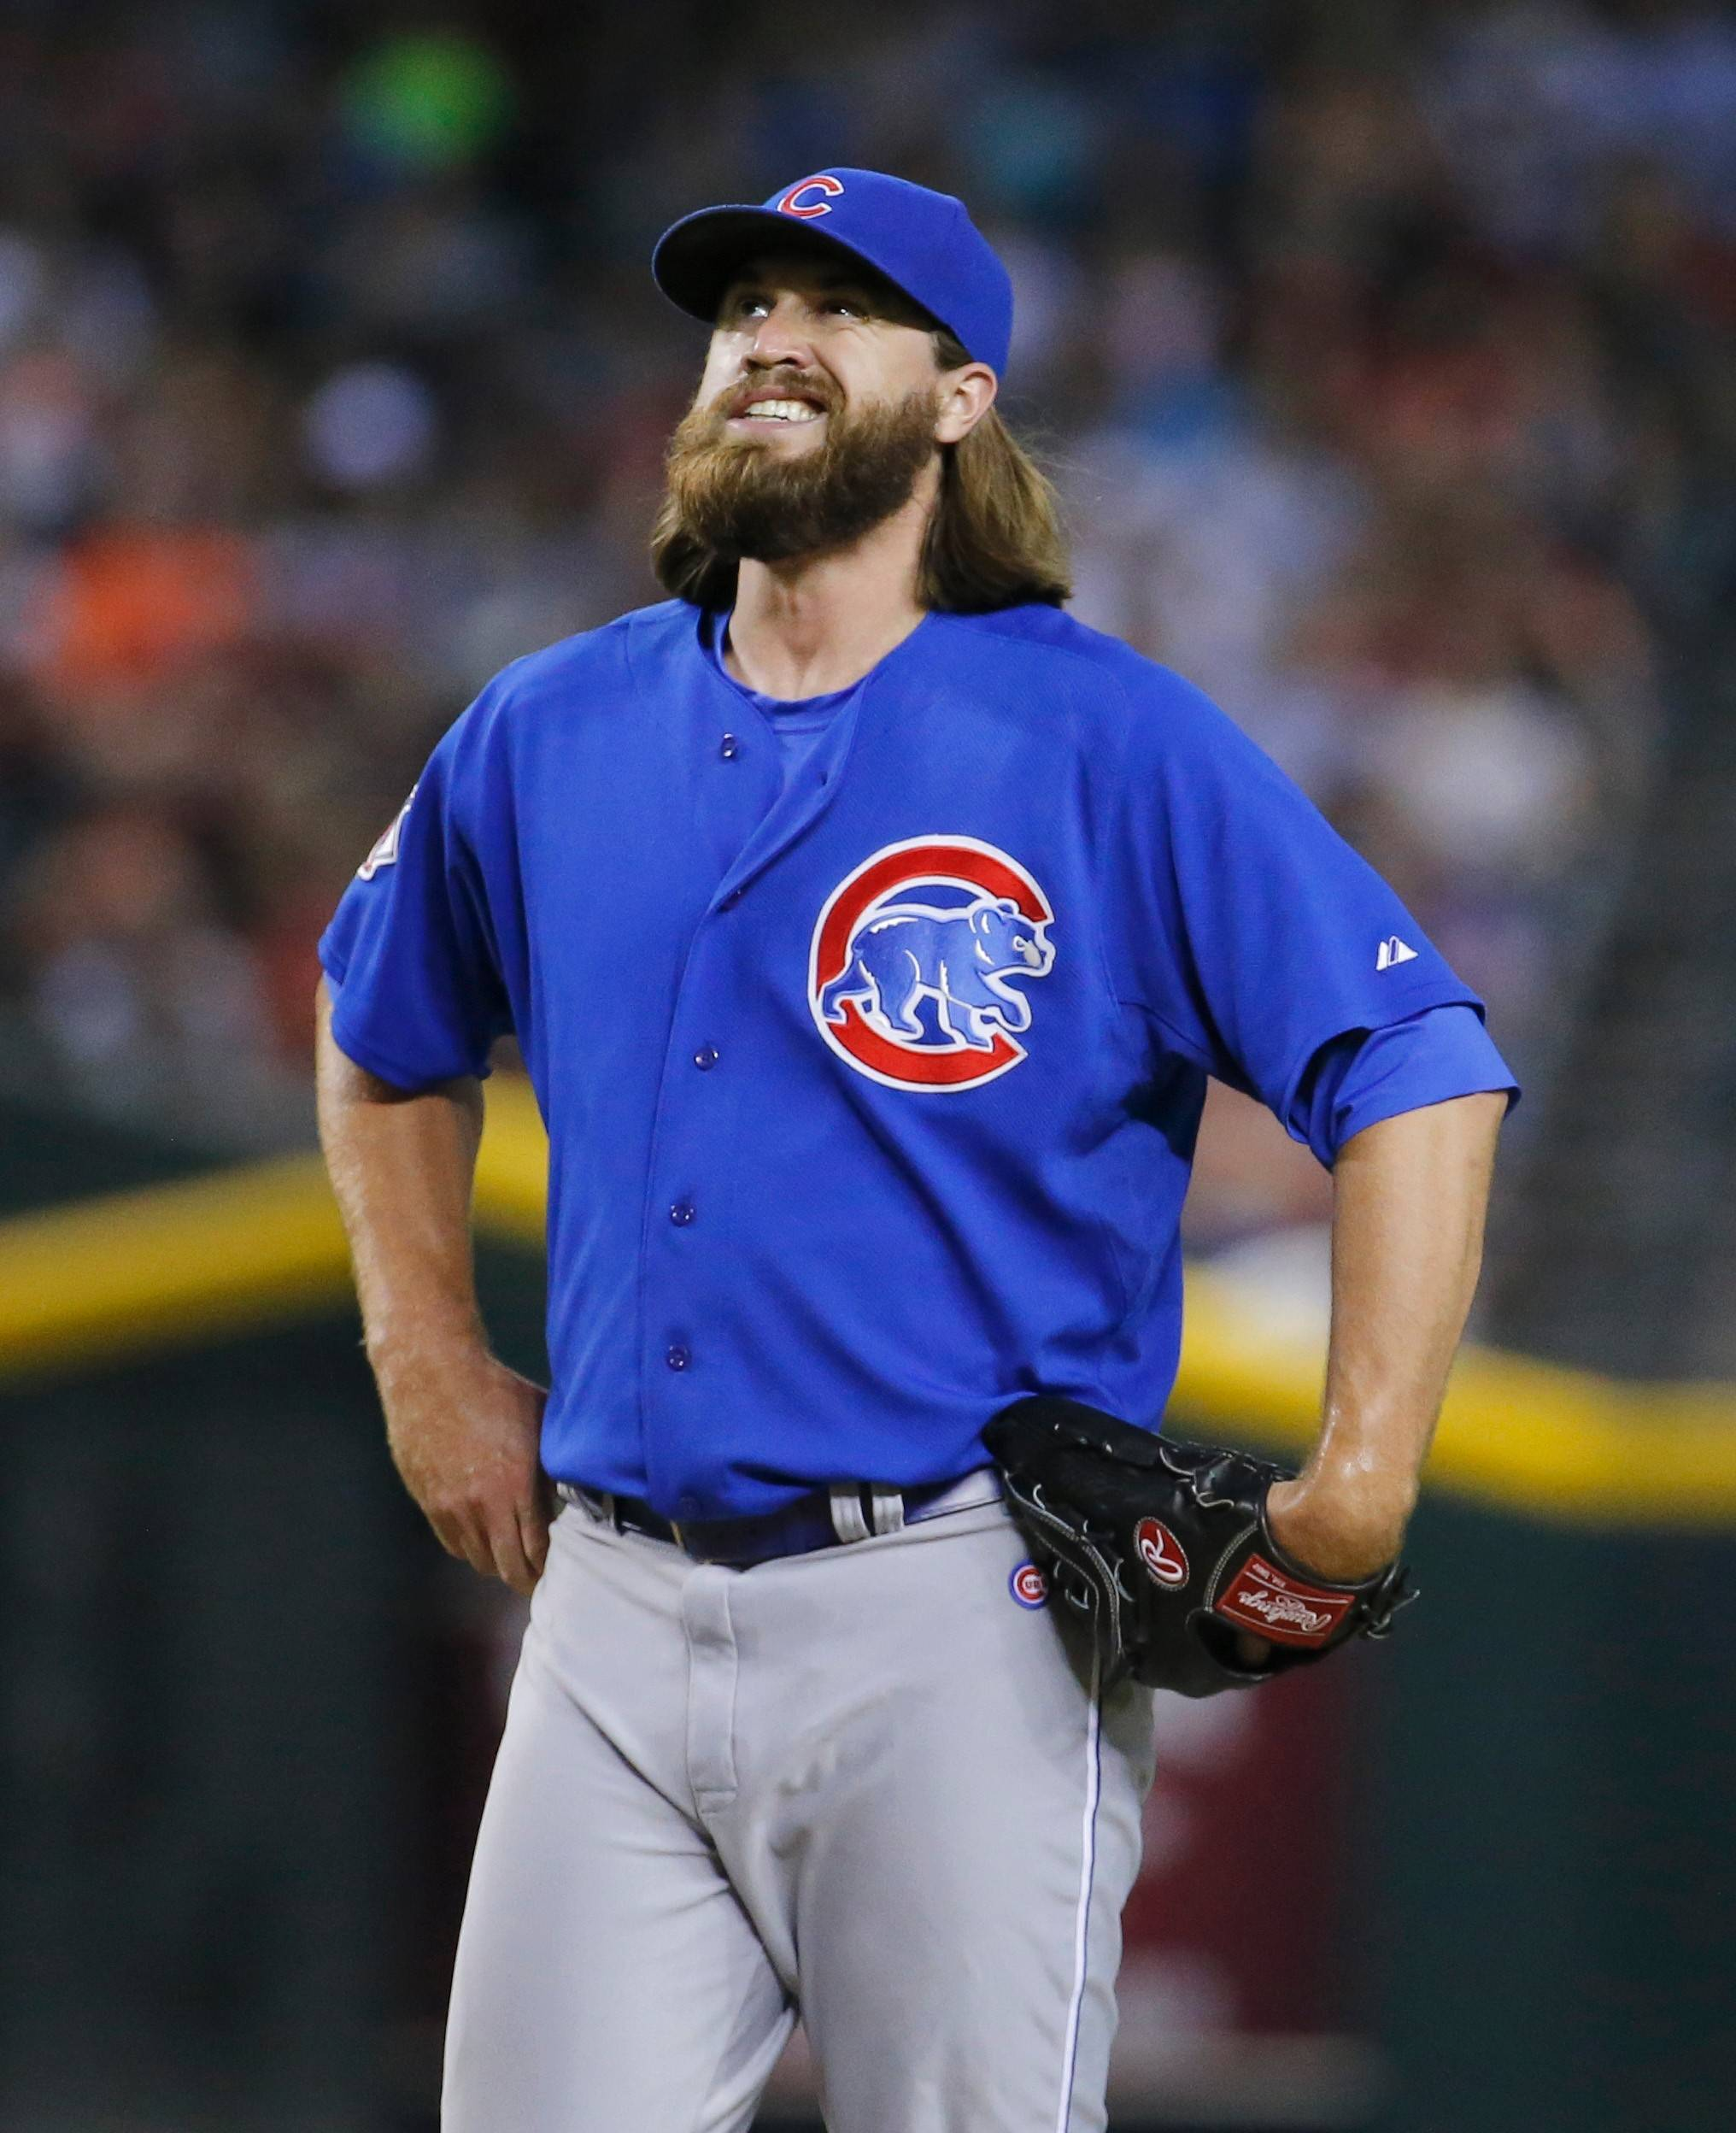 Cubs reliever Brian Schlitter entered Monday tied for 10th in the National League with 51 appearances.